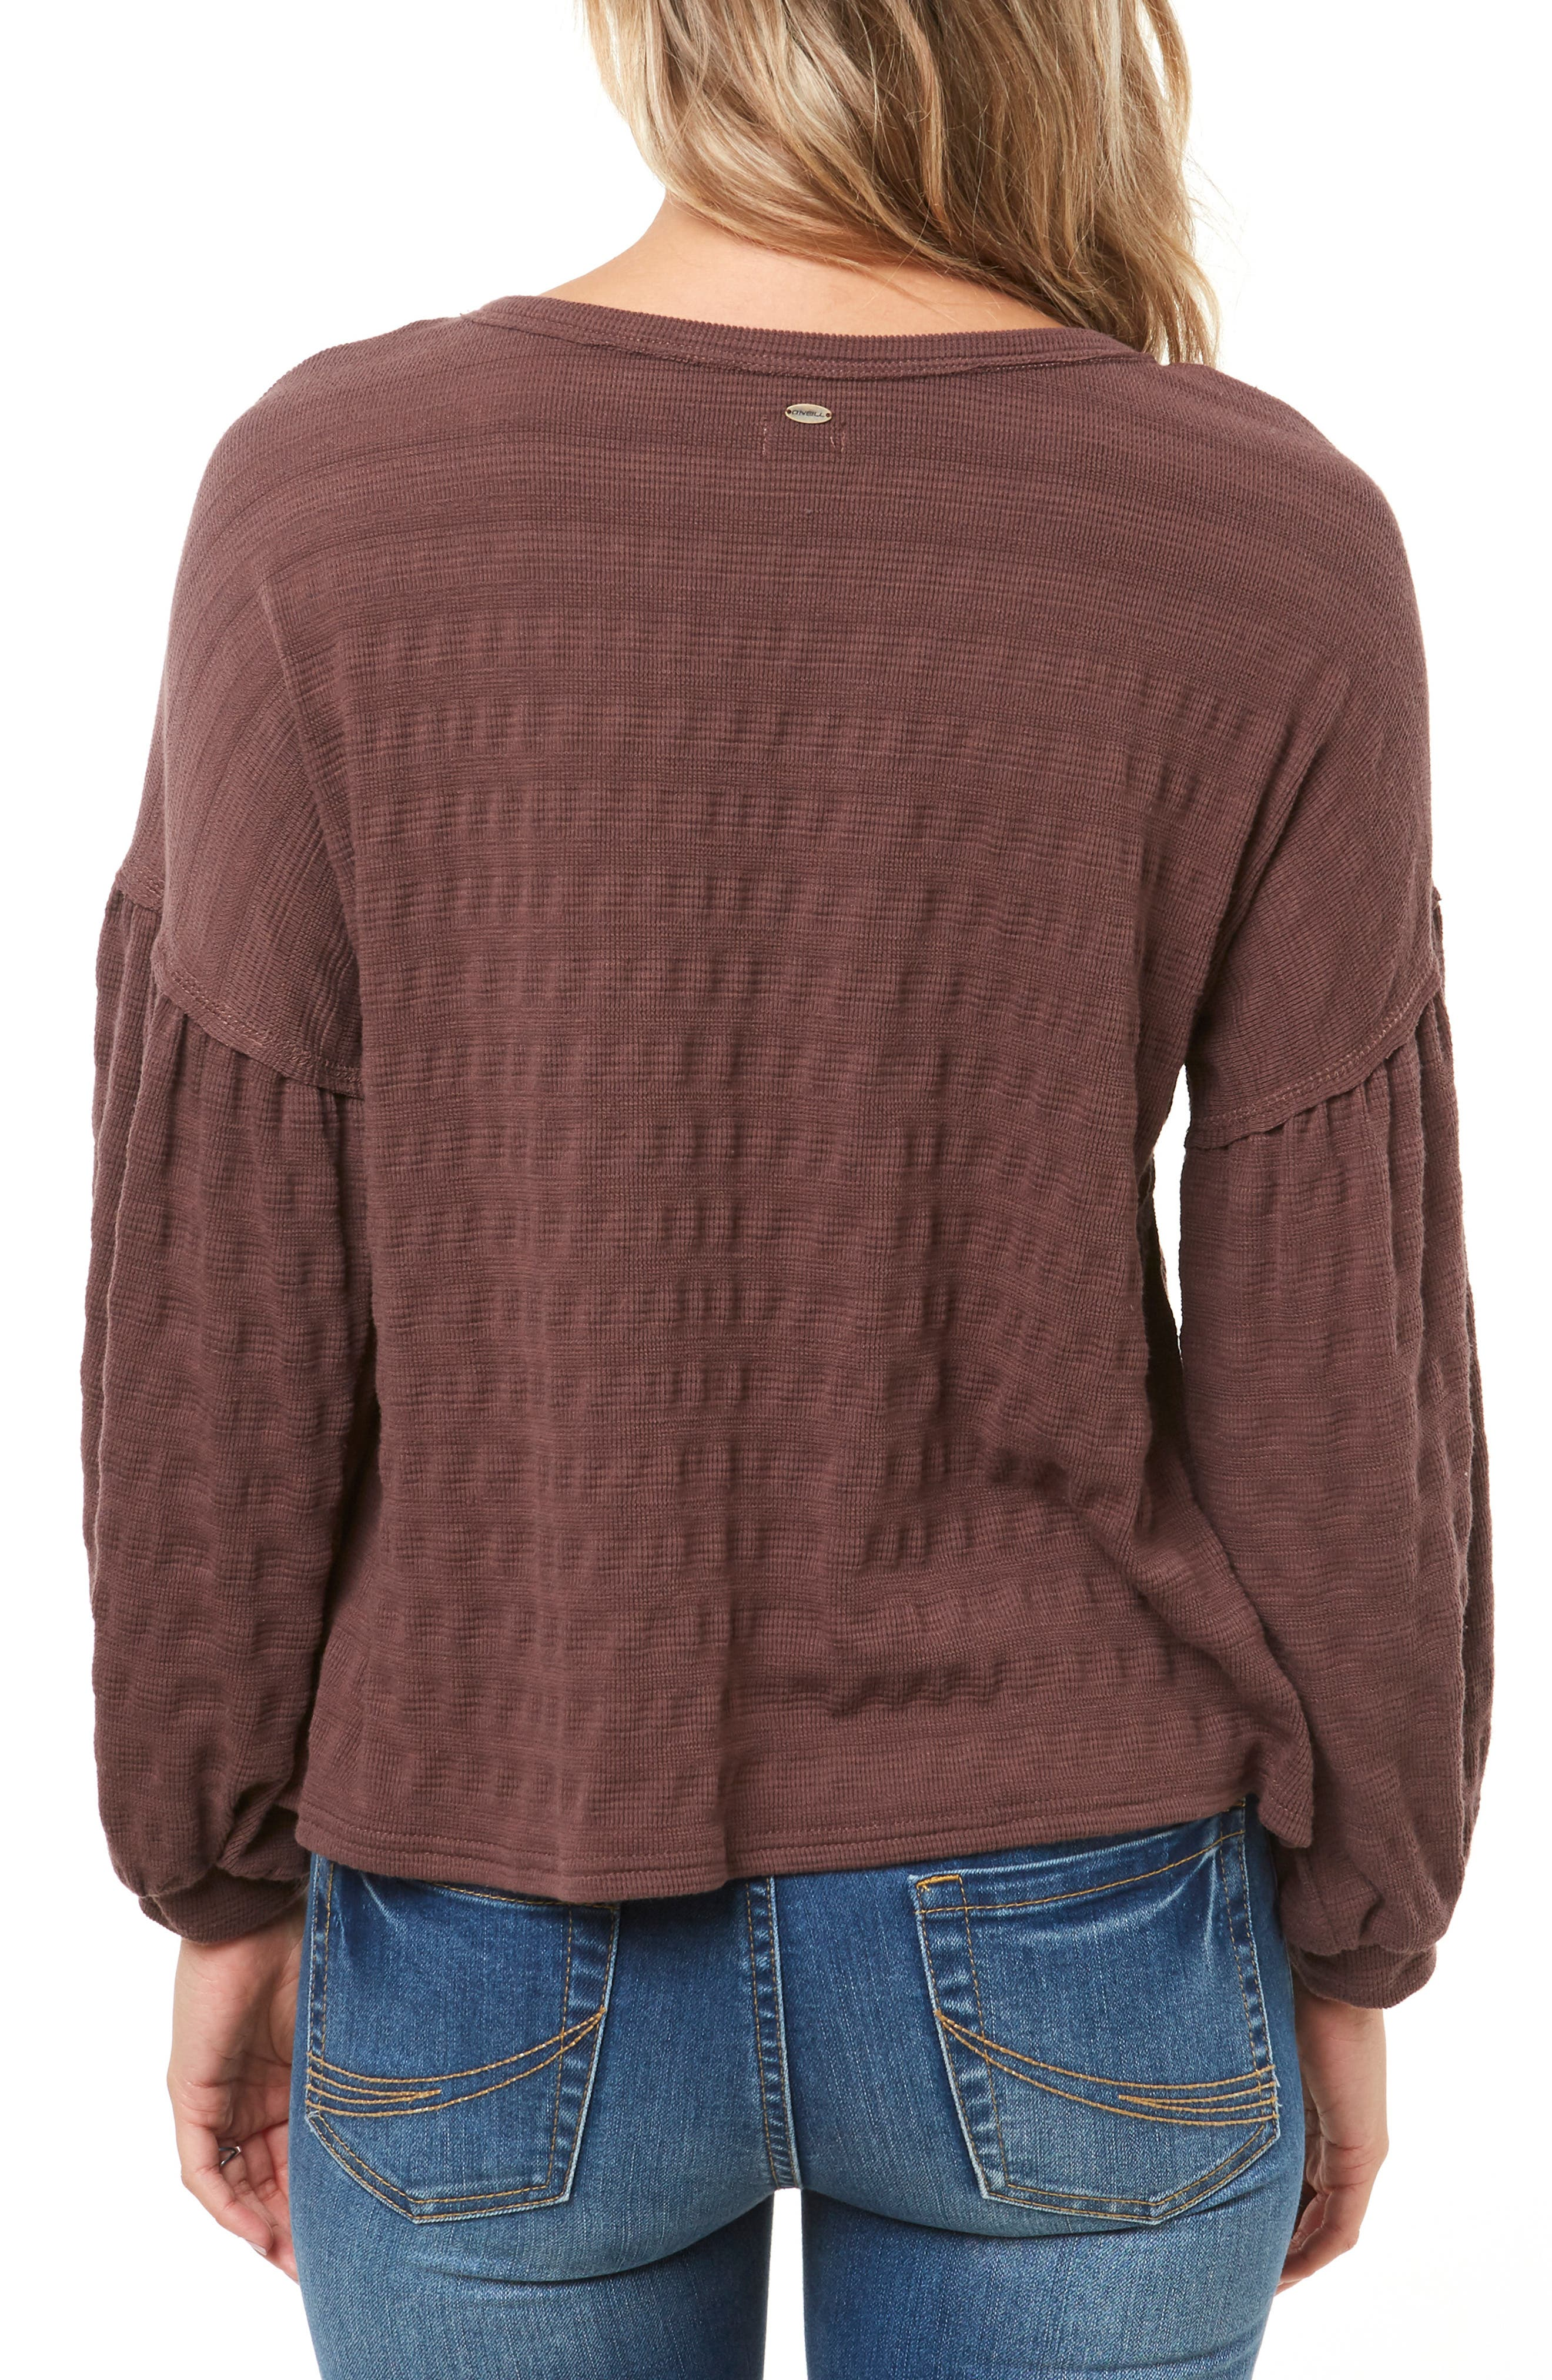 Pacifica Balloon Sleeve Top,                             Alternate thumbnail 2, color,                             PEPPERCORN